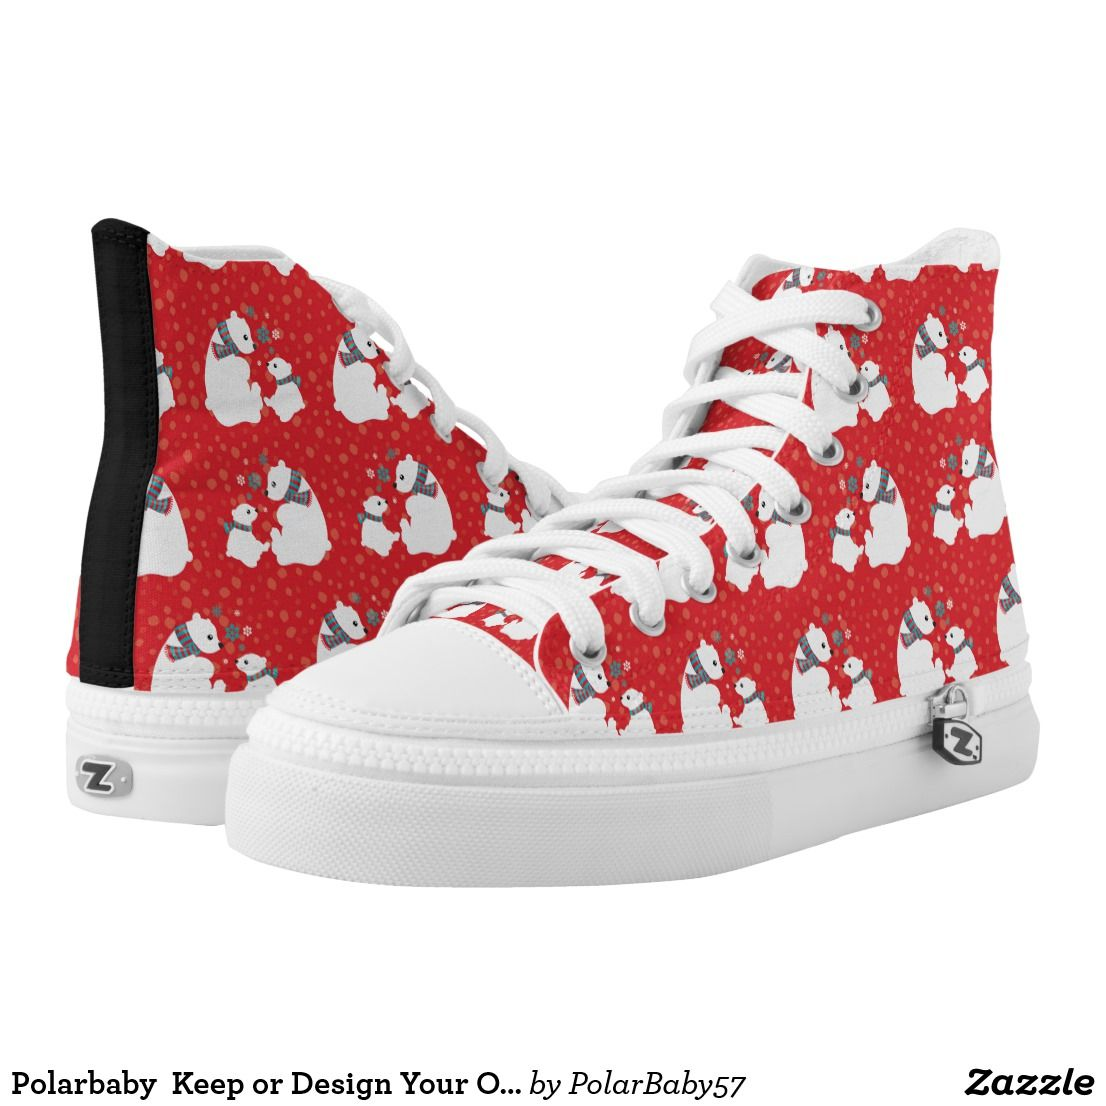 6aeddfd818a1 Polarbaby Keep or Design Your Own High Top Shoes